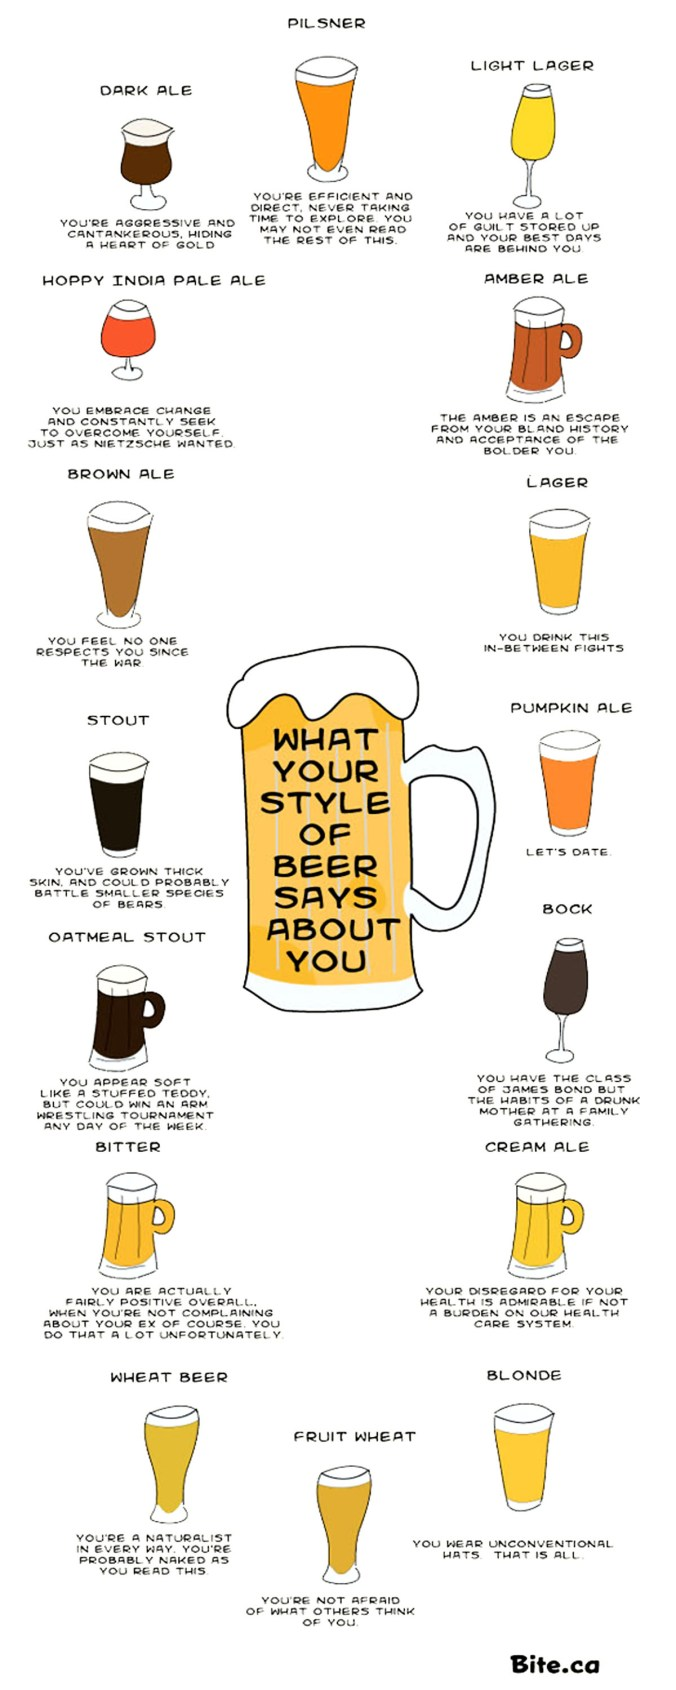 Image on what the beer you drink says about you.